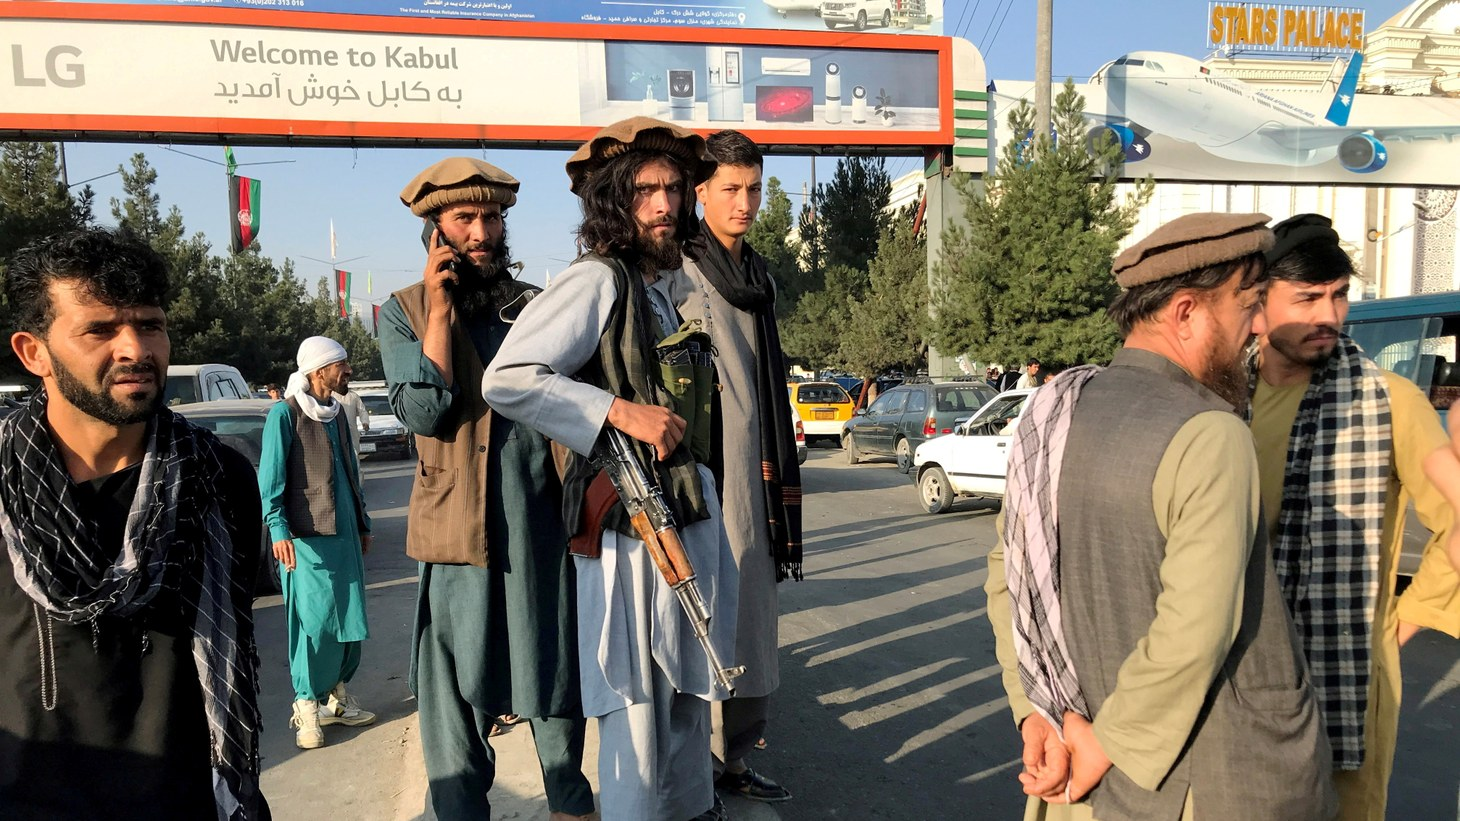 A member of the Taliban stands outside Hamid Karzai International Airport in Kabul, Afghanistan, August 16.